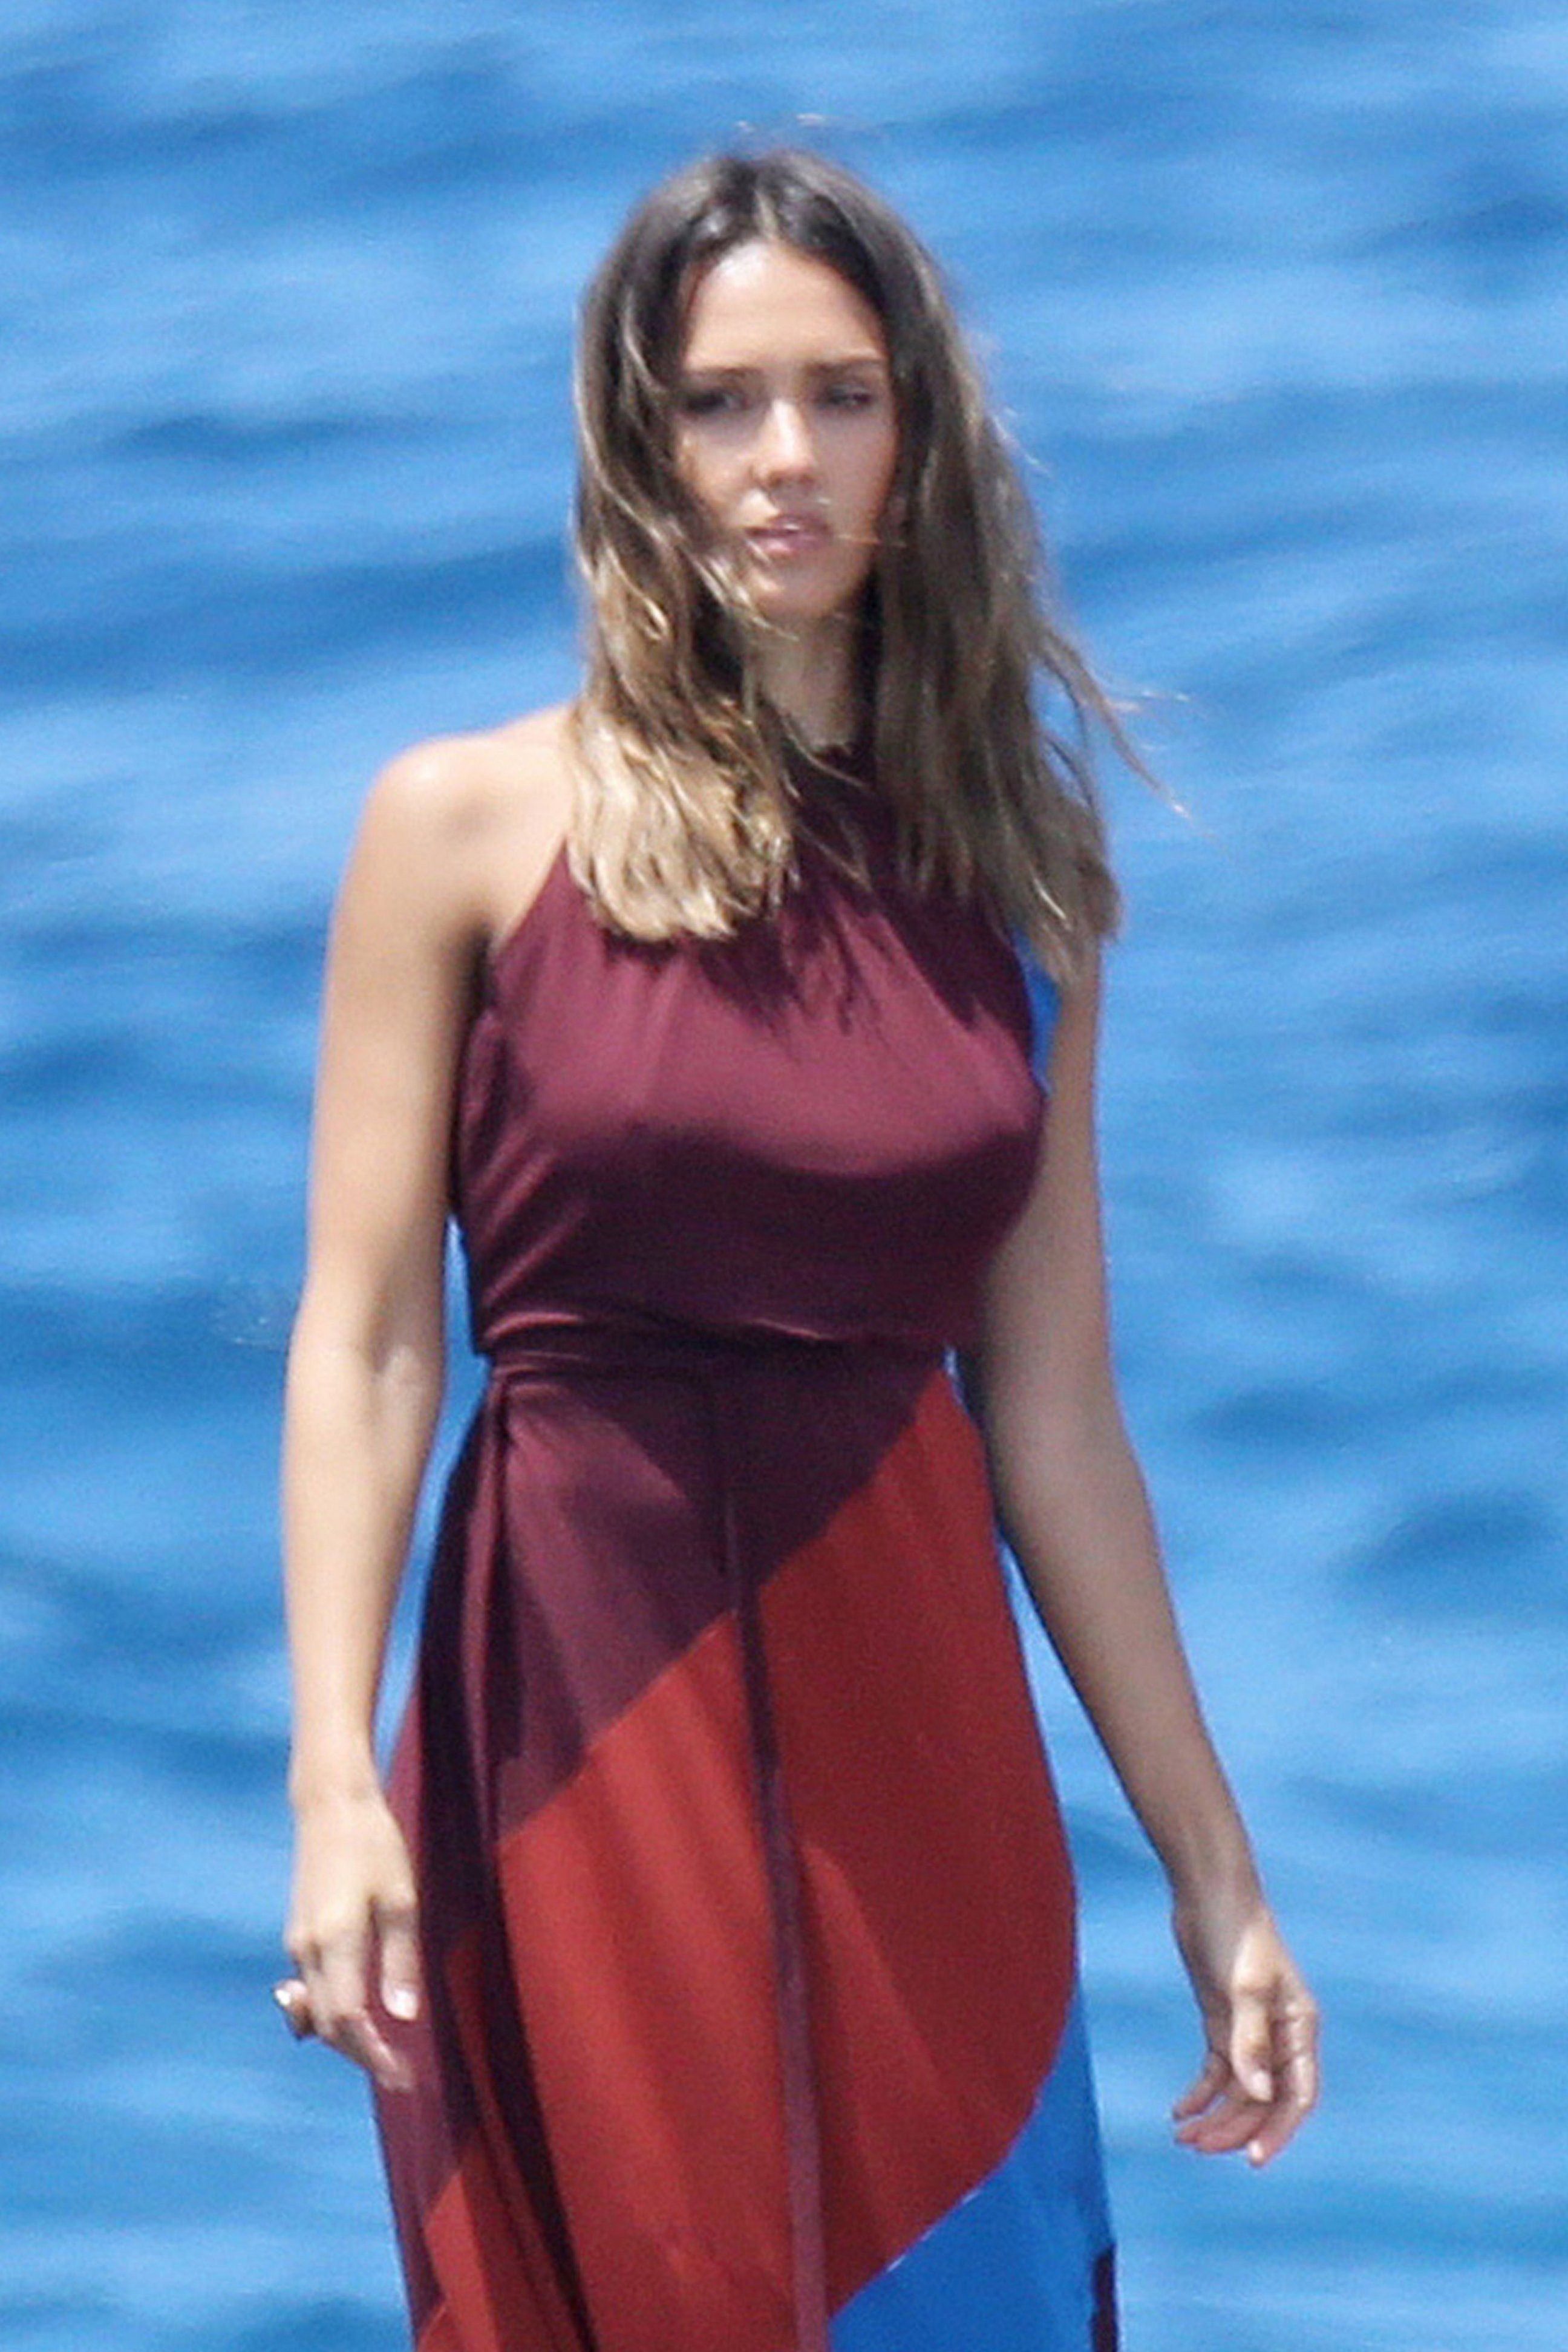 Jessica Alba Nude The Fappening - Page 6 - FappeningGram